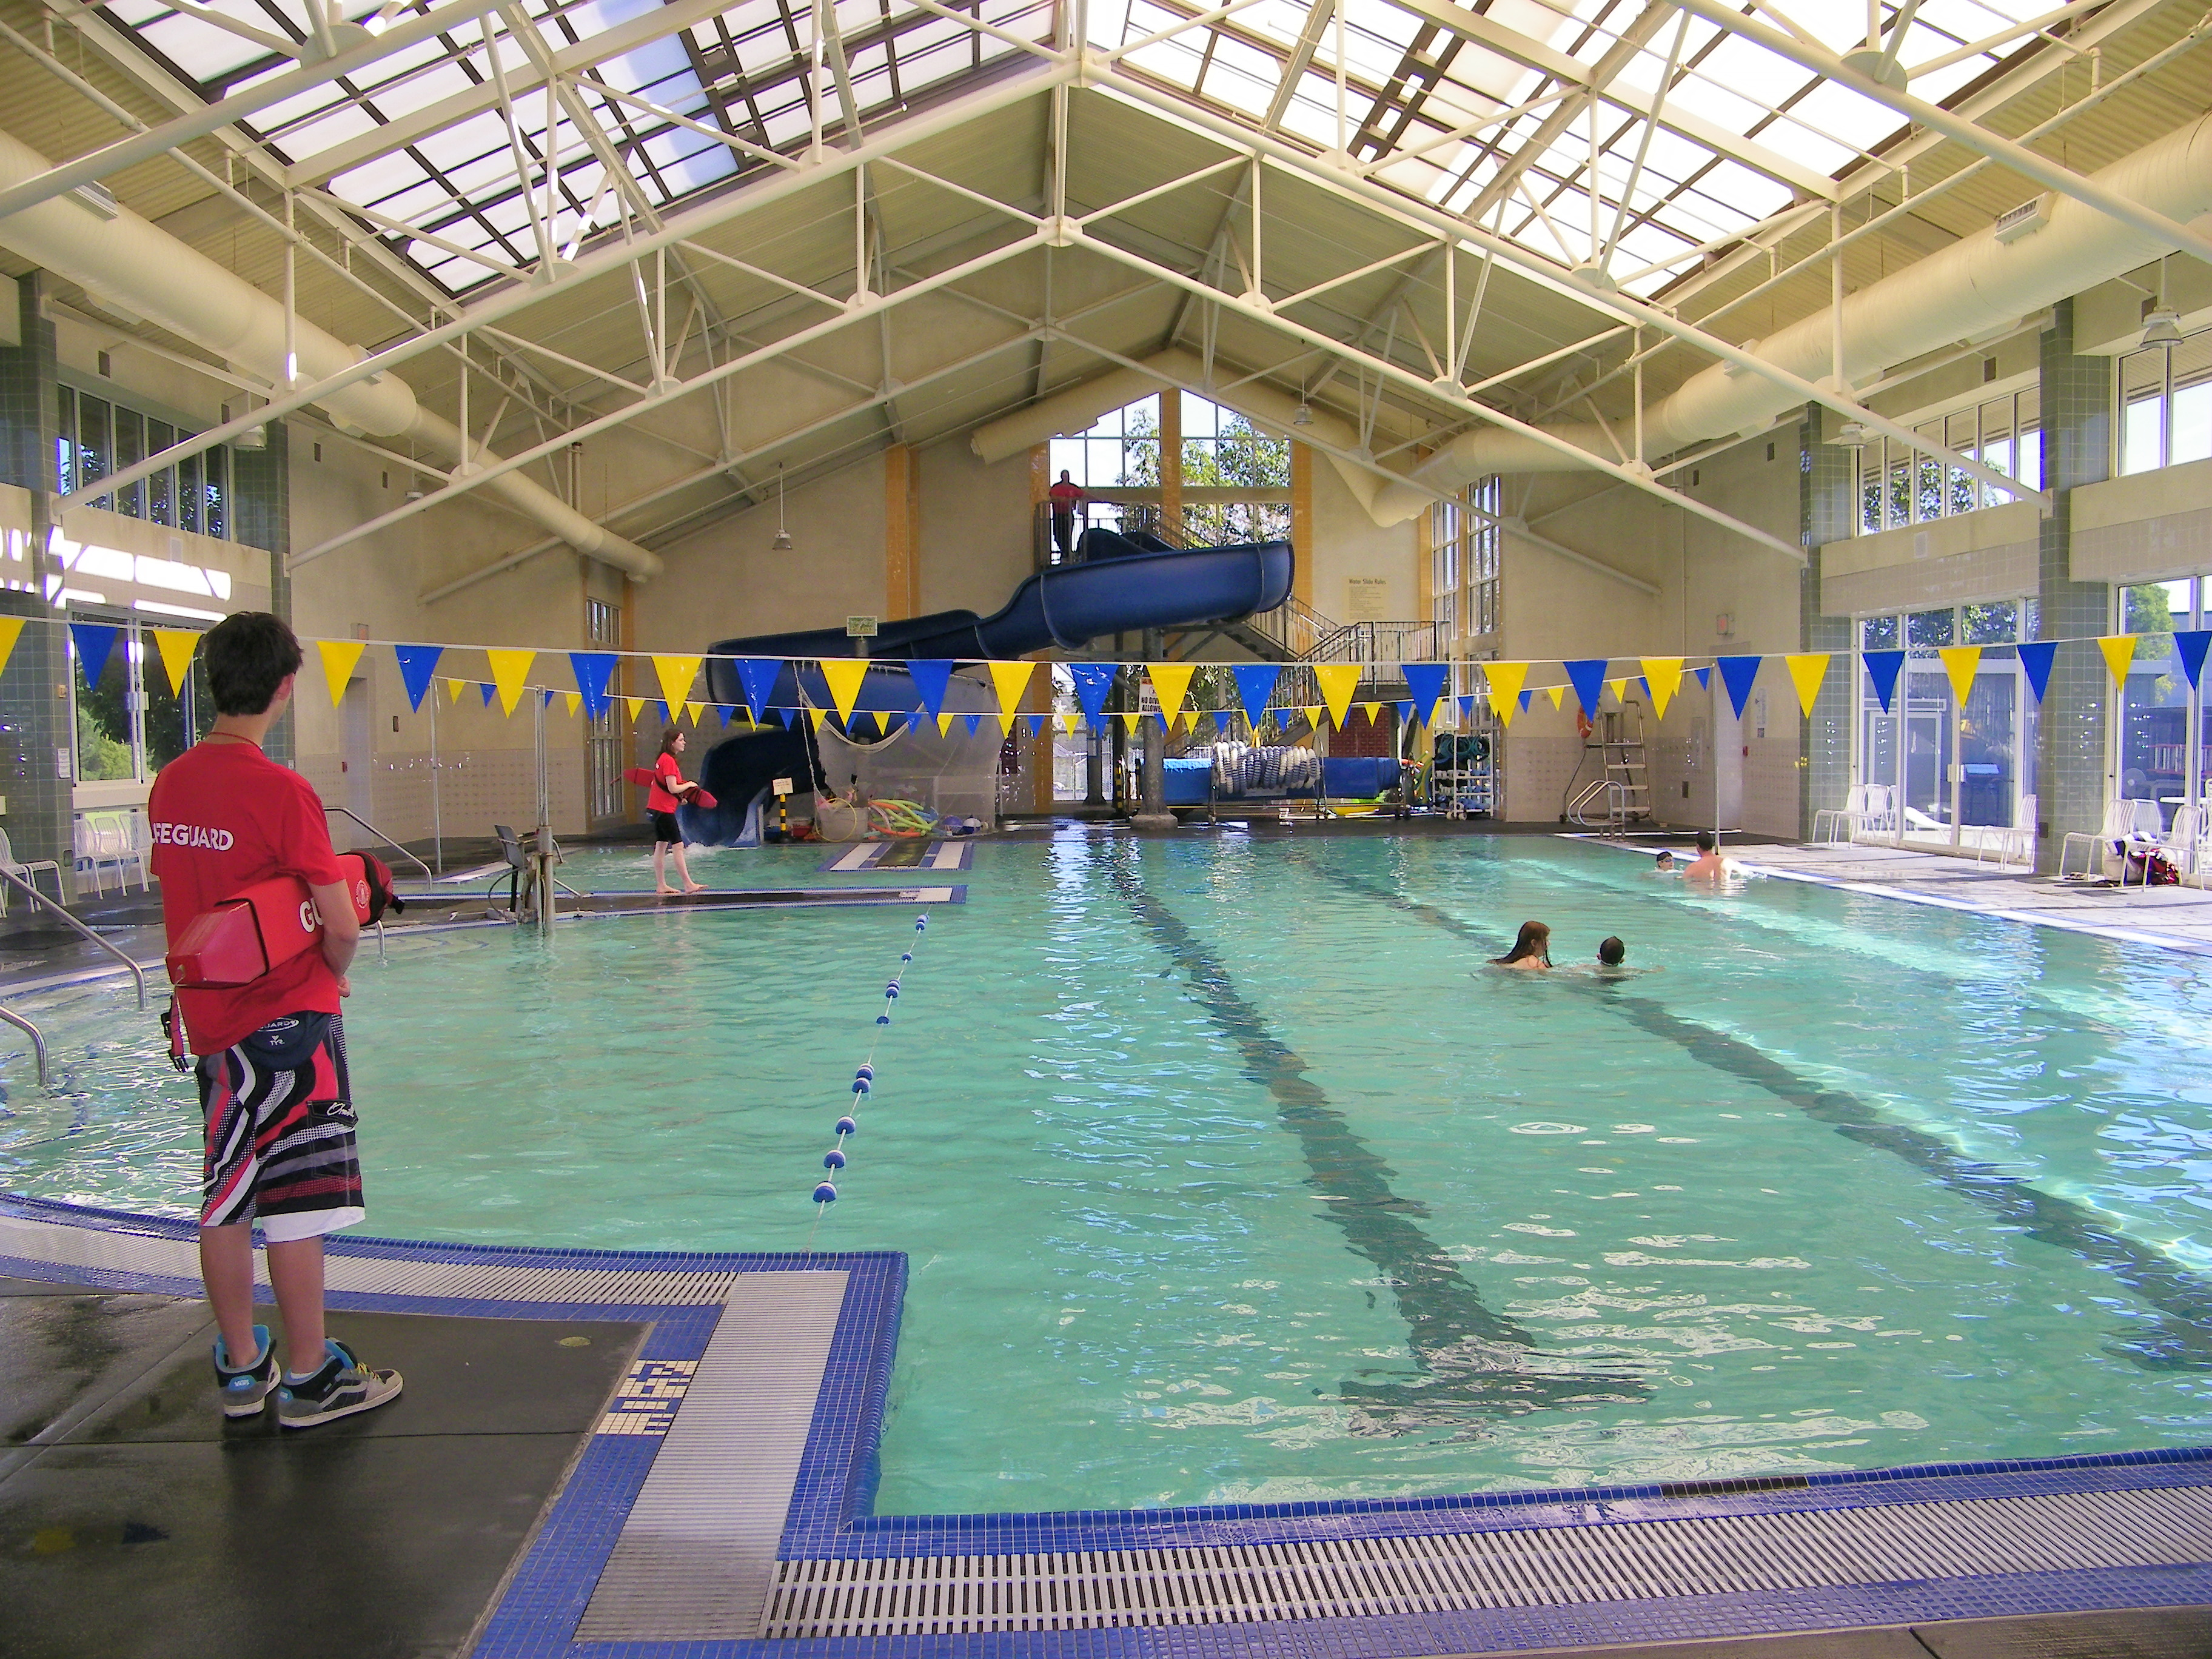 Mill valley kids birthday parties 365 things to do marin - Valley center swimming pool hours ...